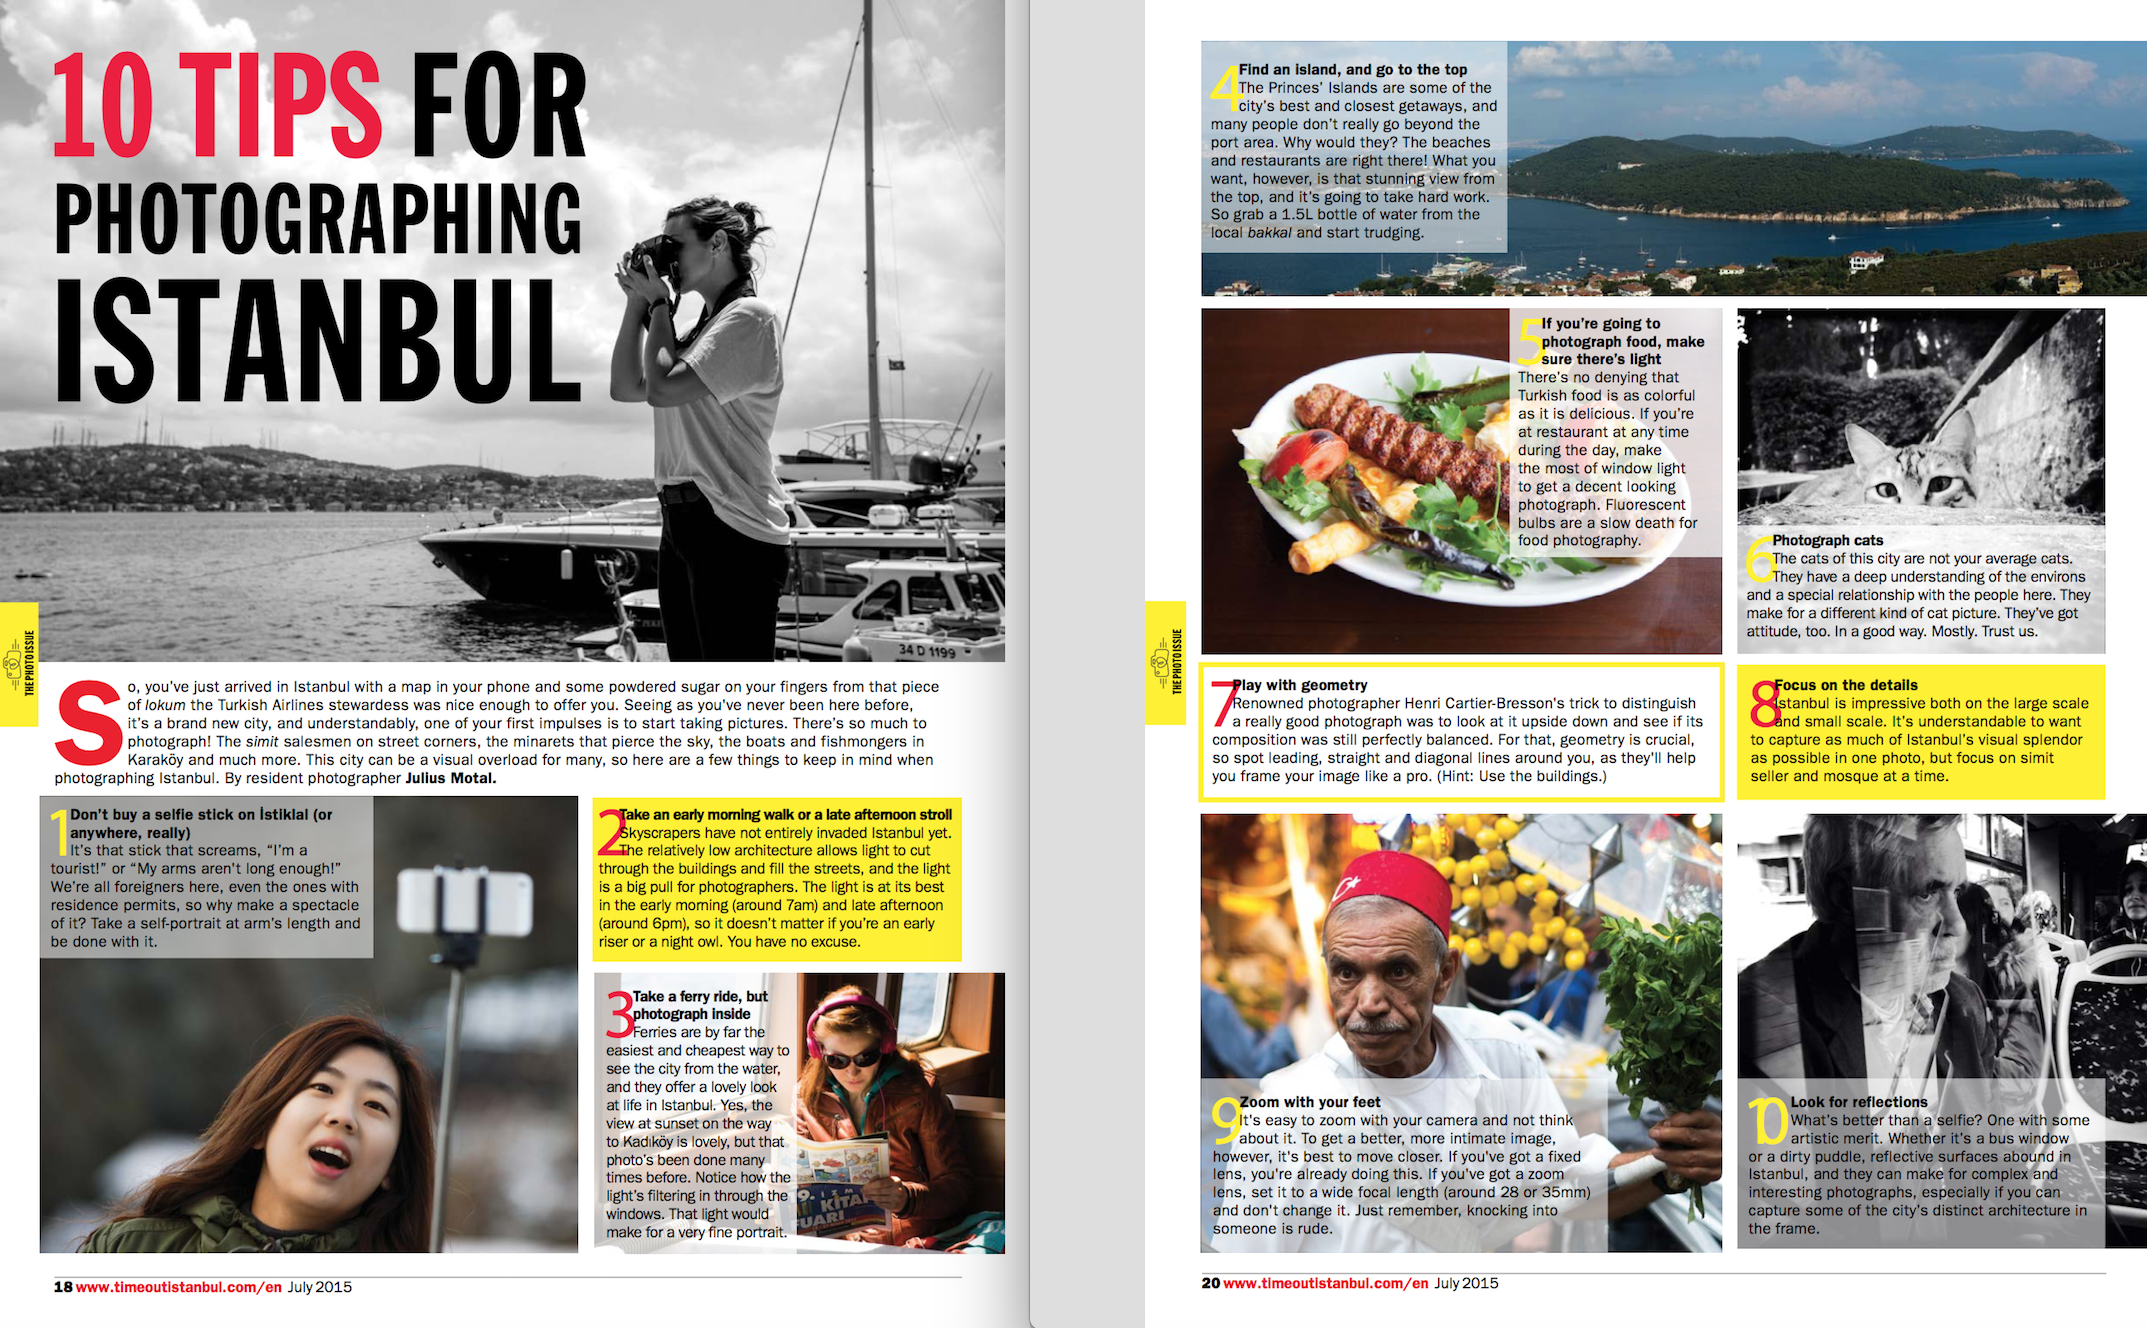 201507 10 tips Time Out Istanbul - Julius Motal.png